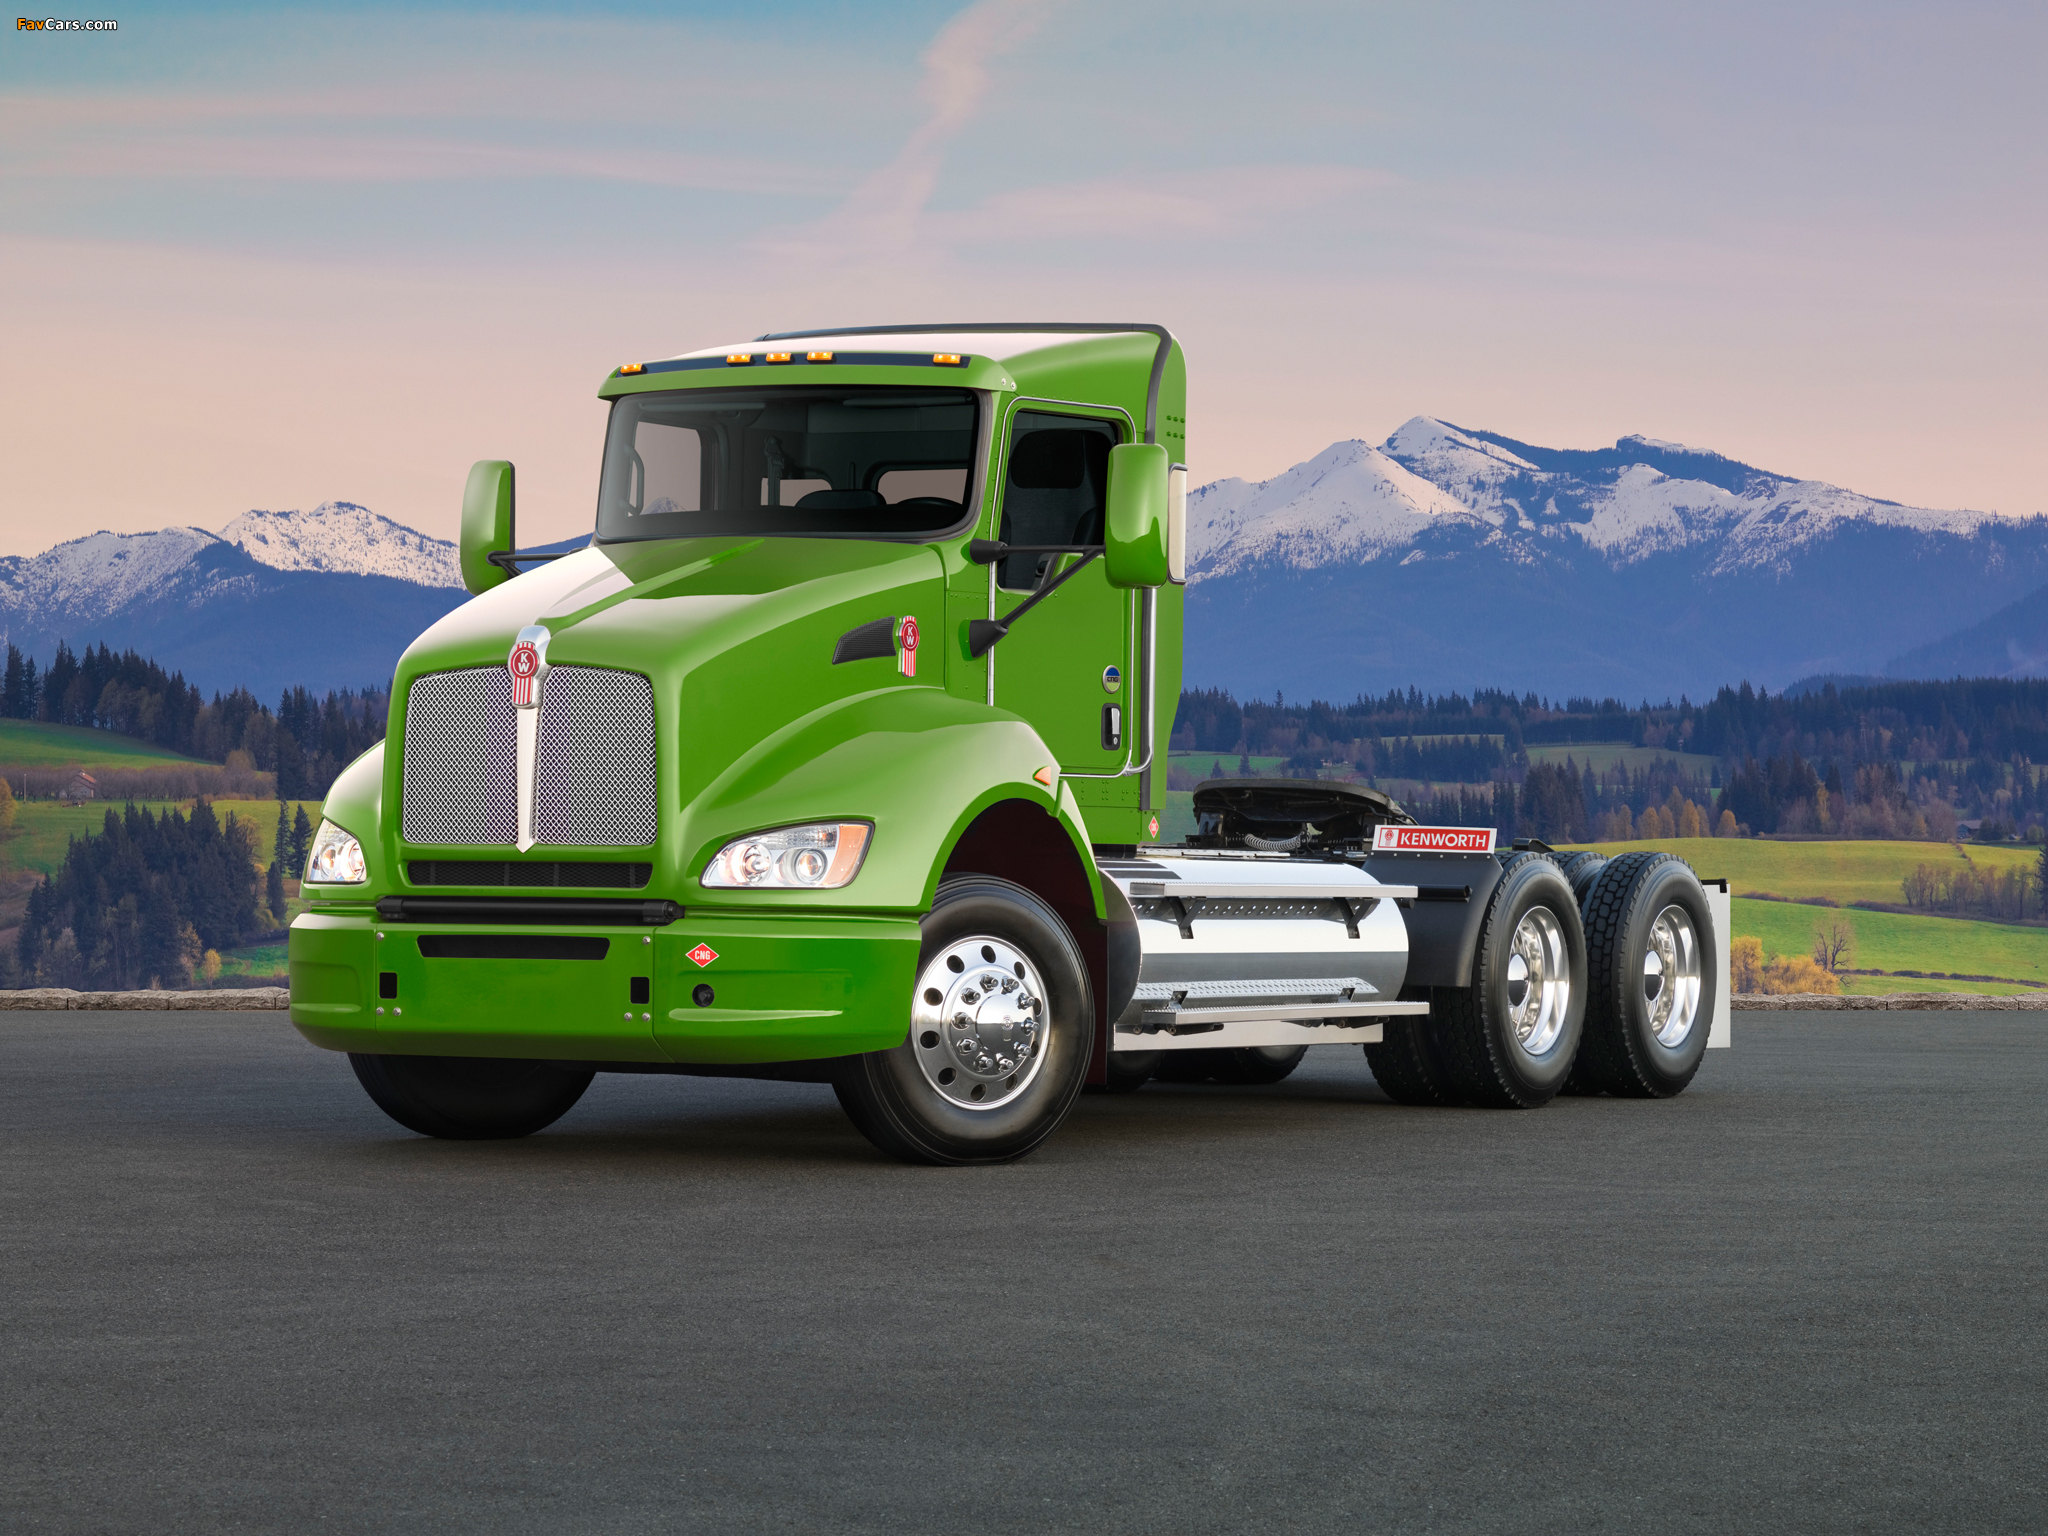 kenworth images - photo #16